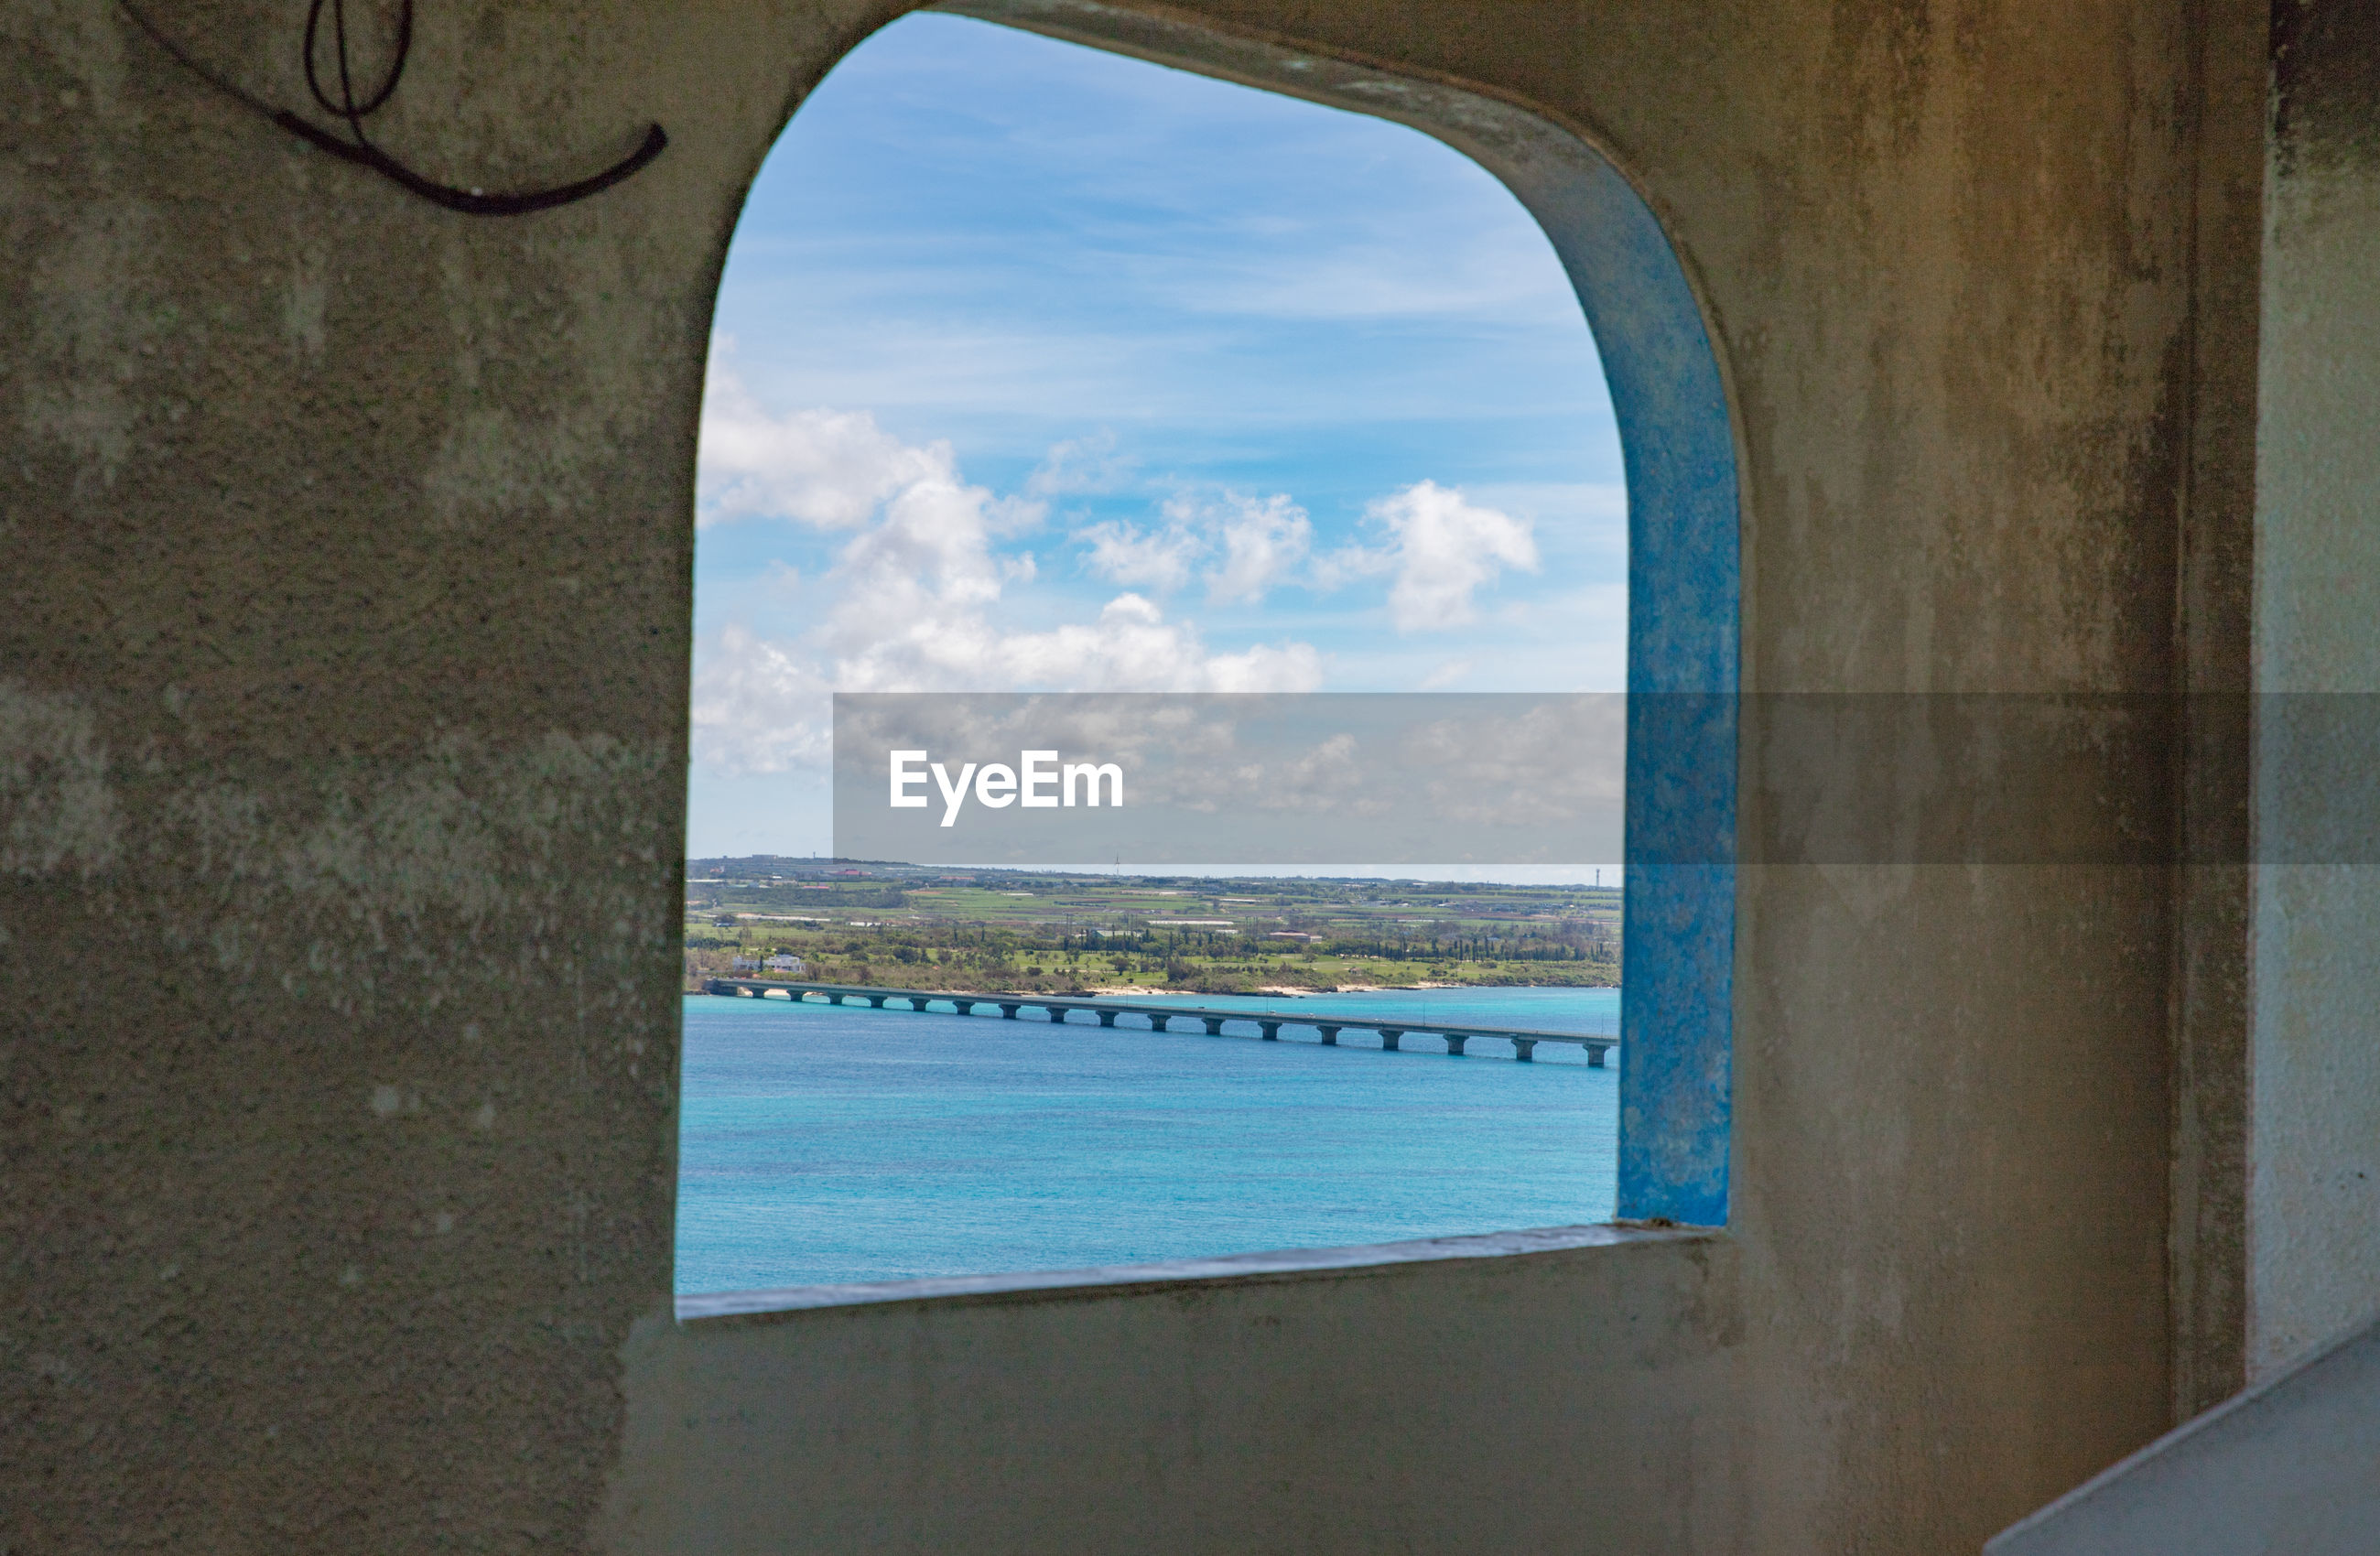 VIEW OF SEA AGAINST SKY SEEN THROUGH WINDOW